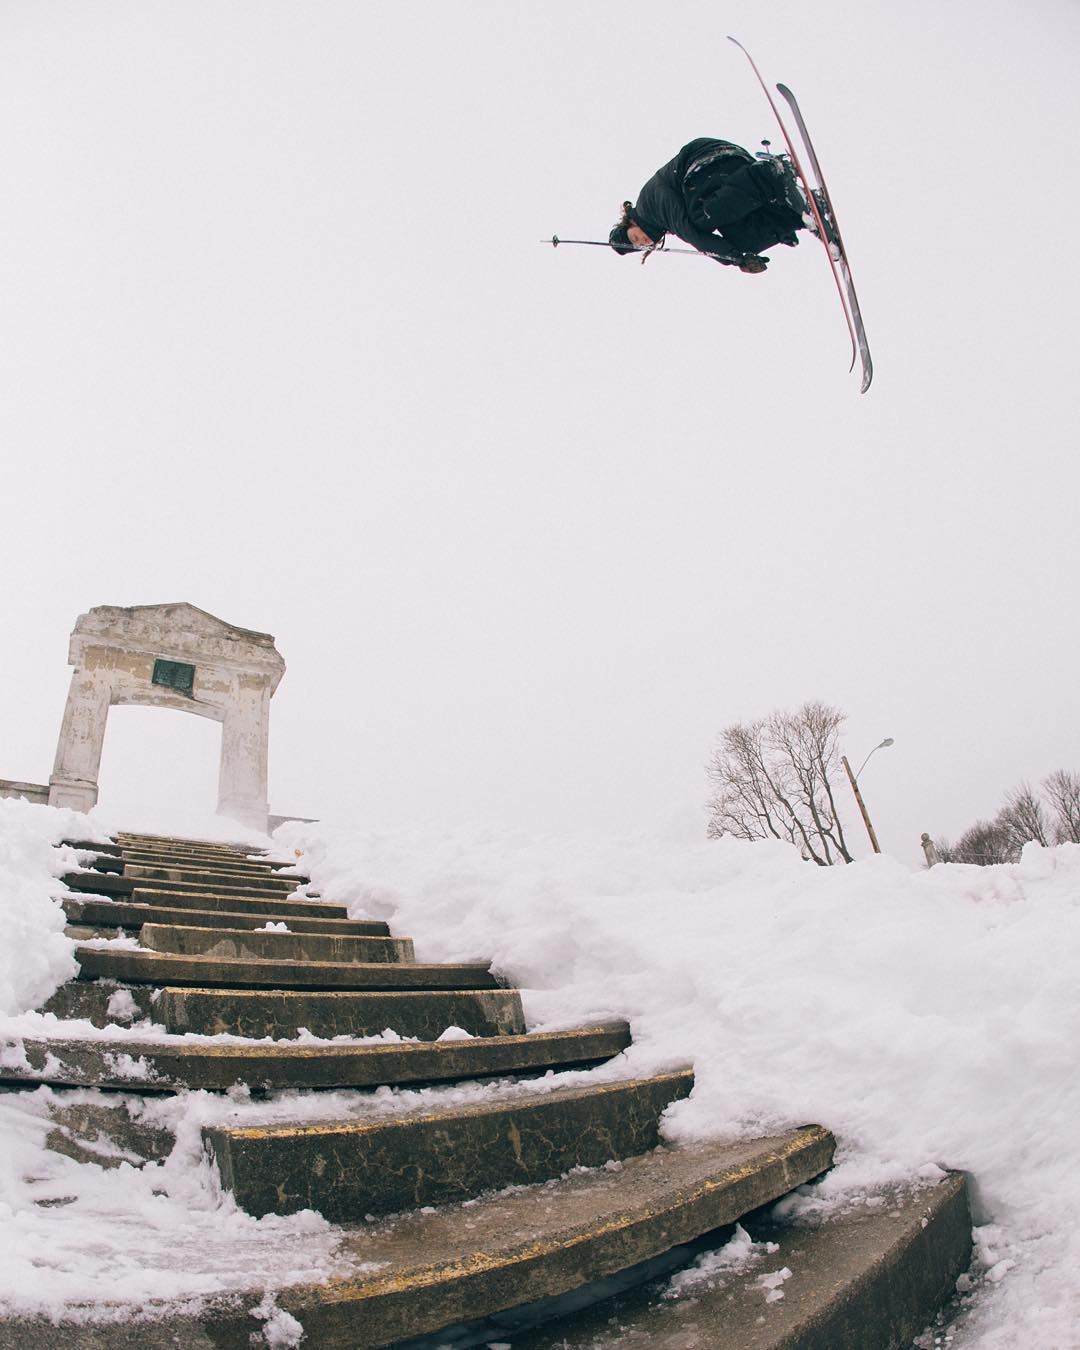 @cam_riley Side - B dropping at 10 am MST. 100% all skiing. #forlackofbetter | photo @baldwinch